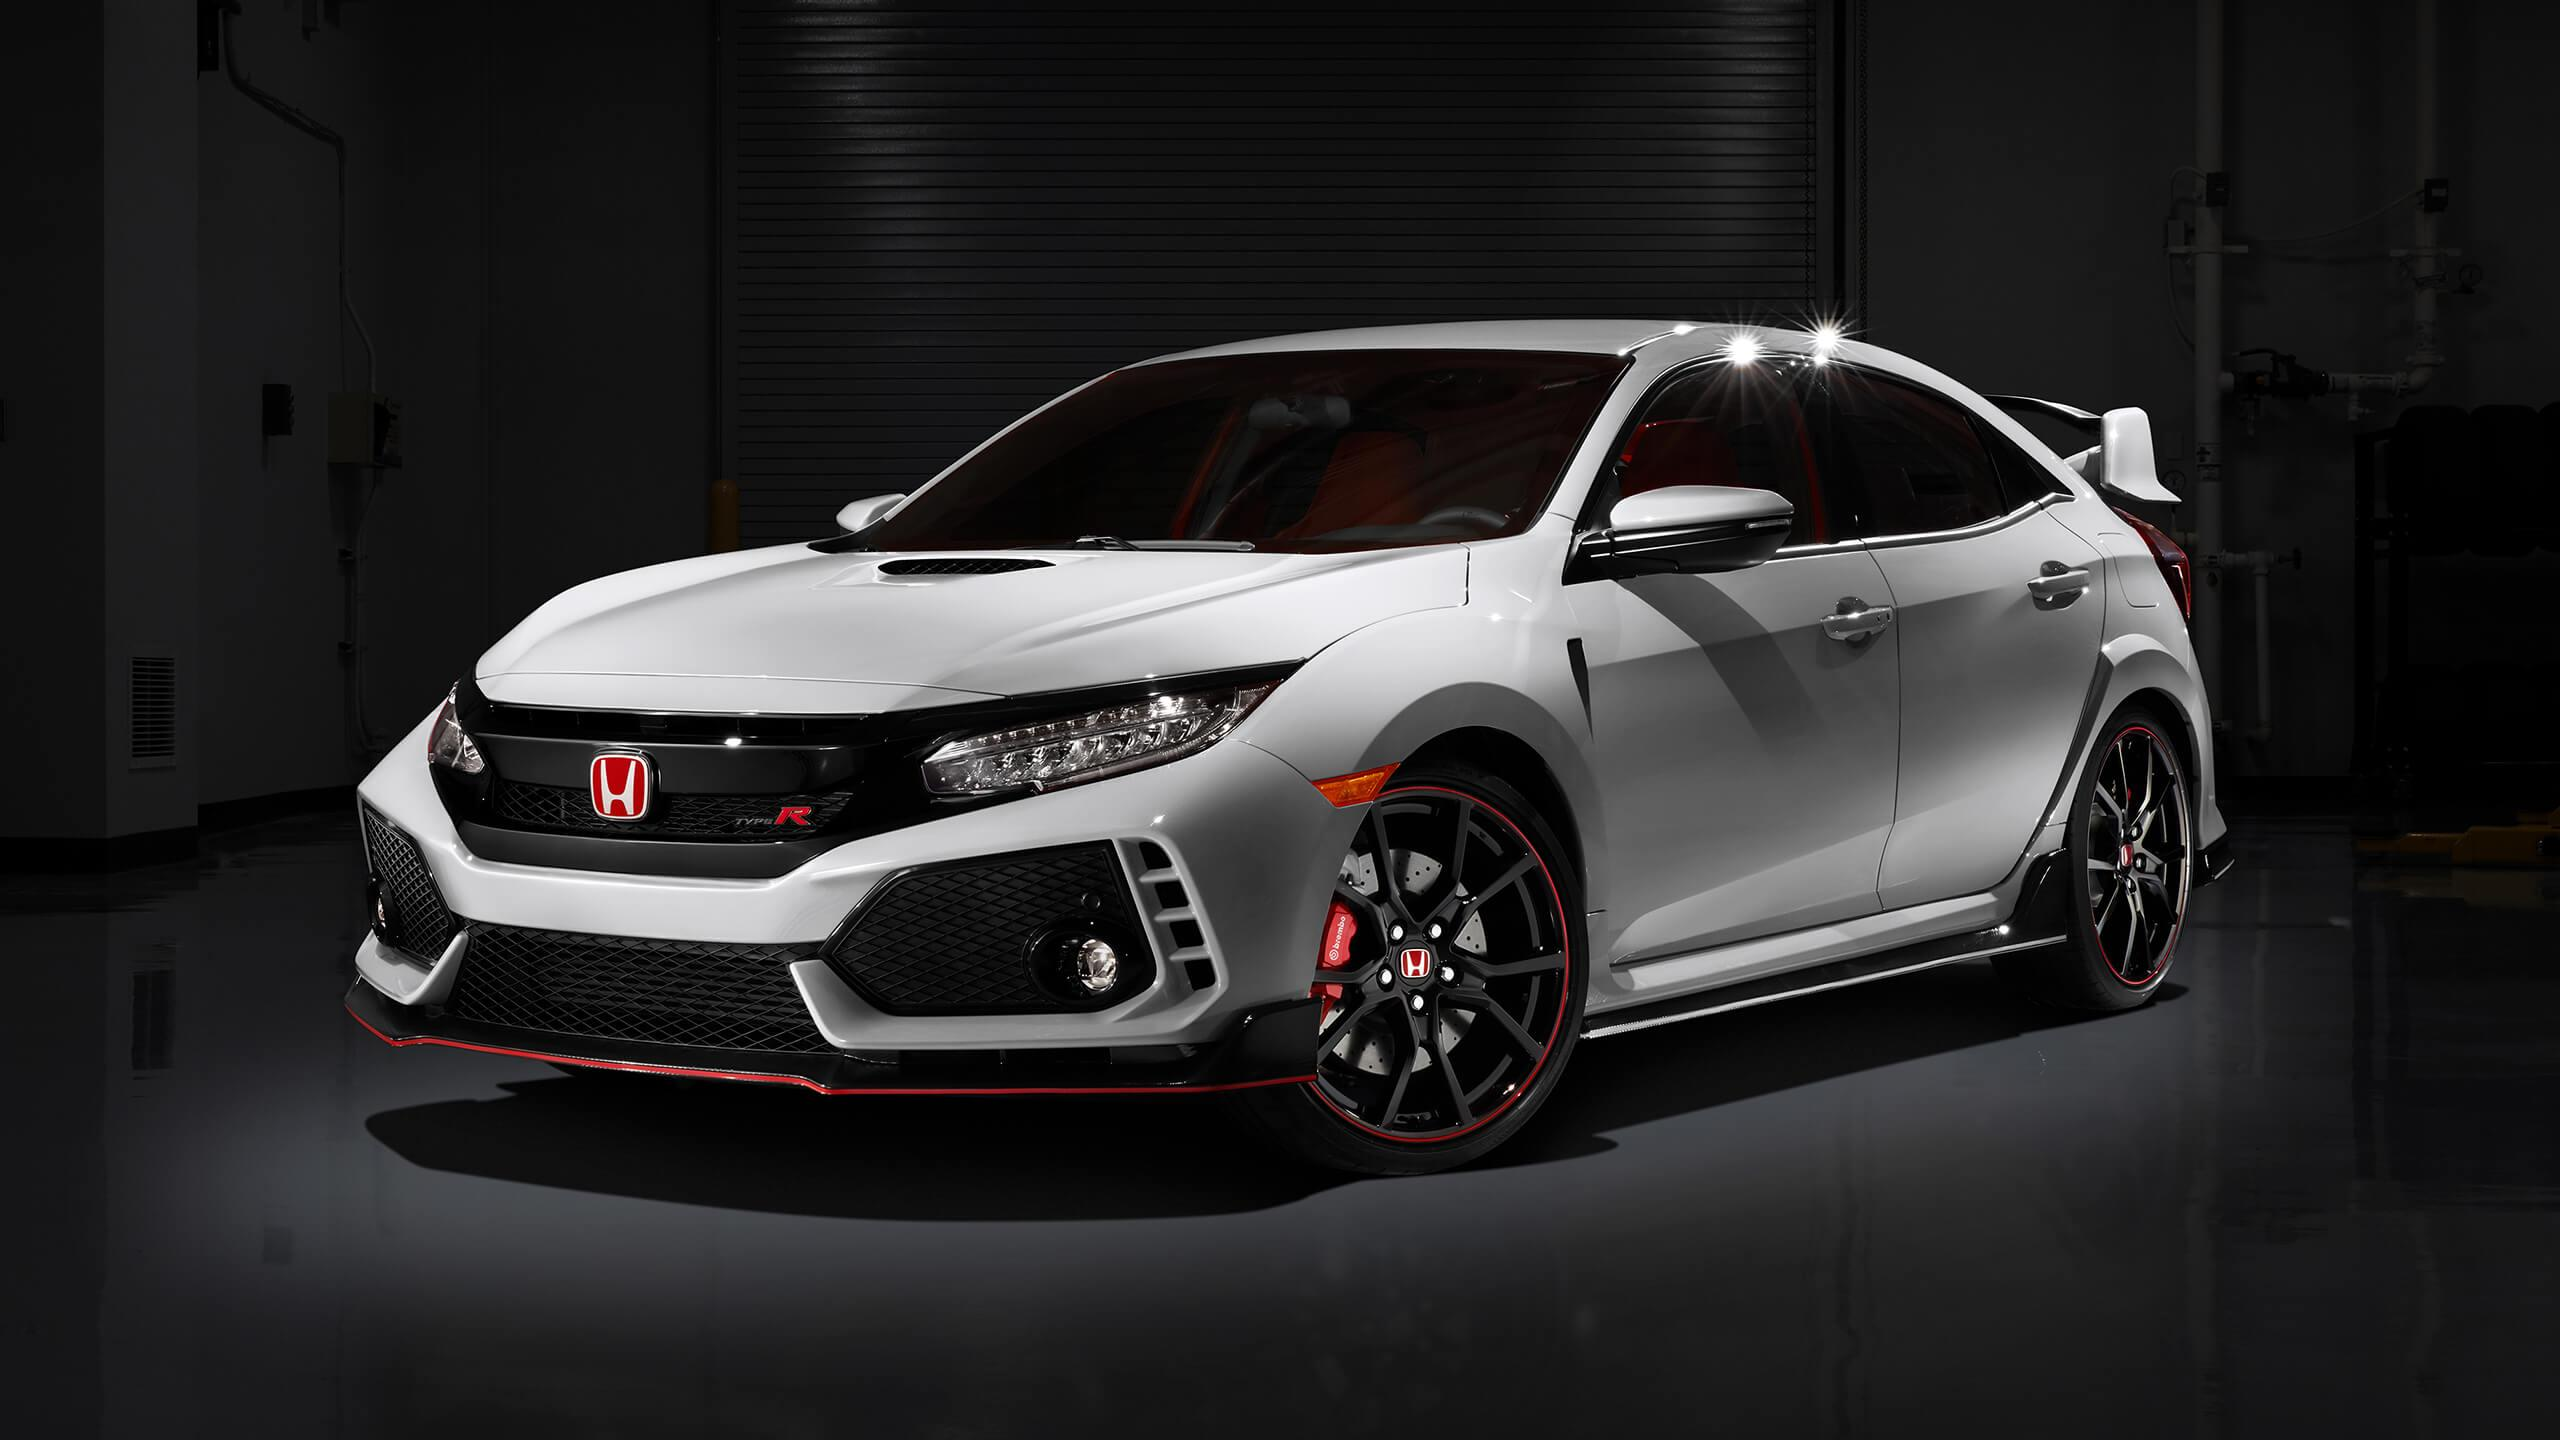 Civic Type R Wallpapers Wallpaper Cave